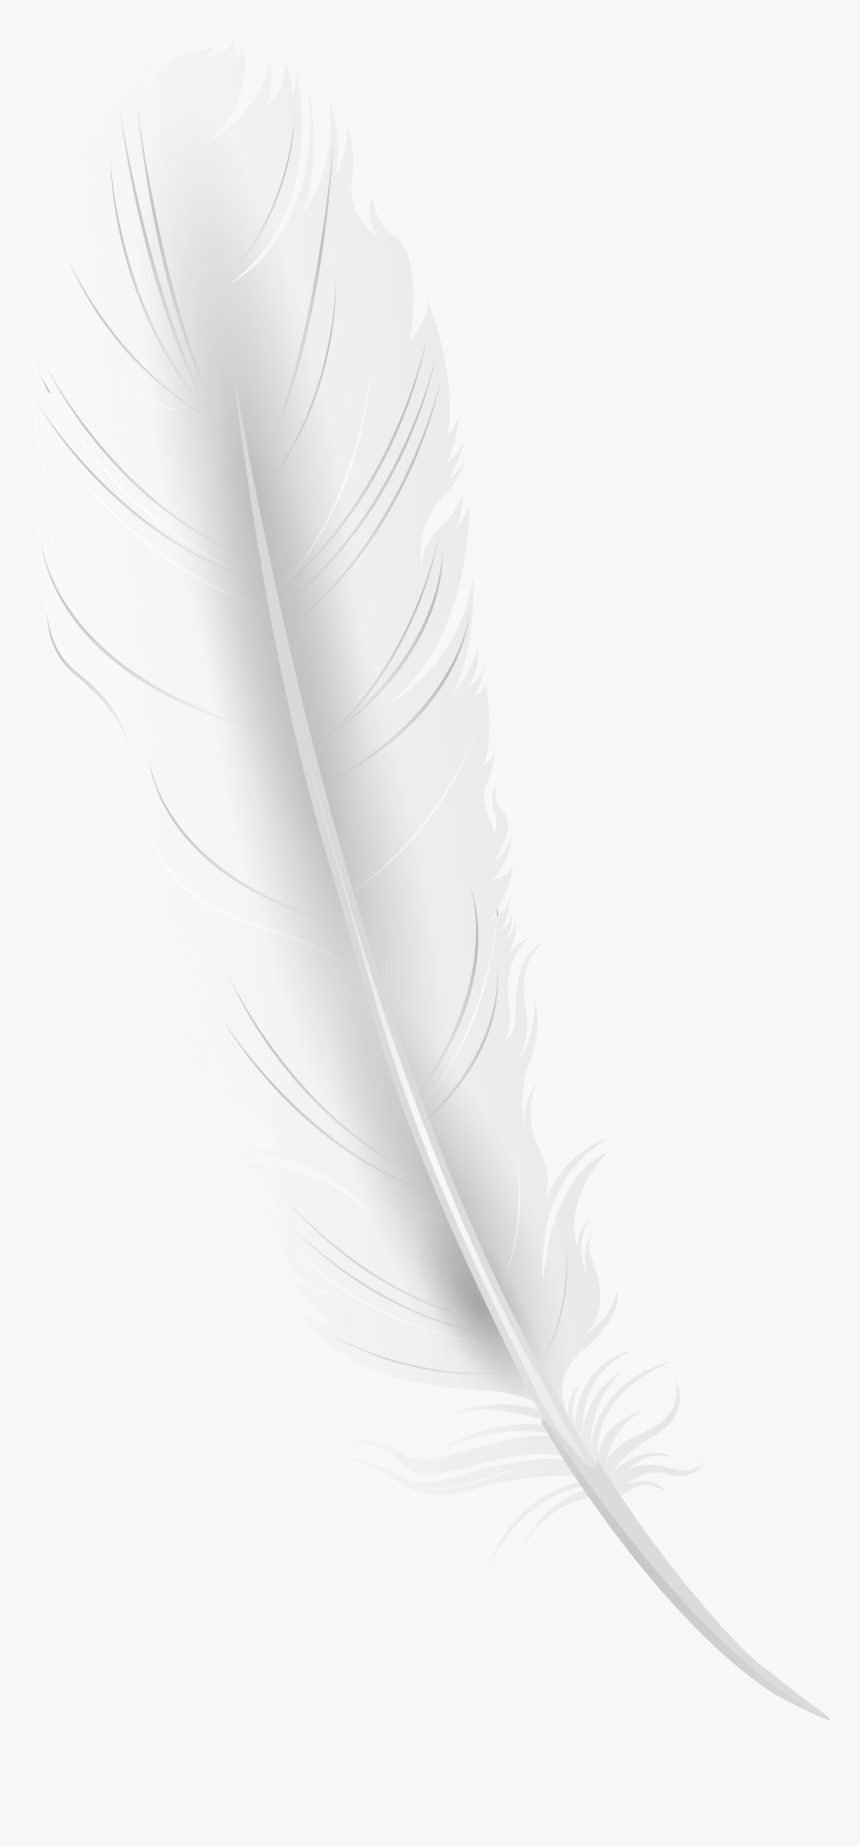 Transparent Quill Pen Clipart - White Feather Png, Png Download, Free Download